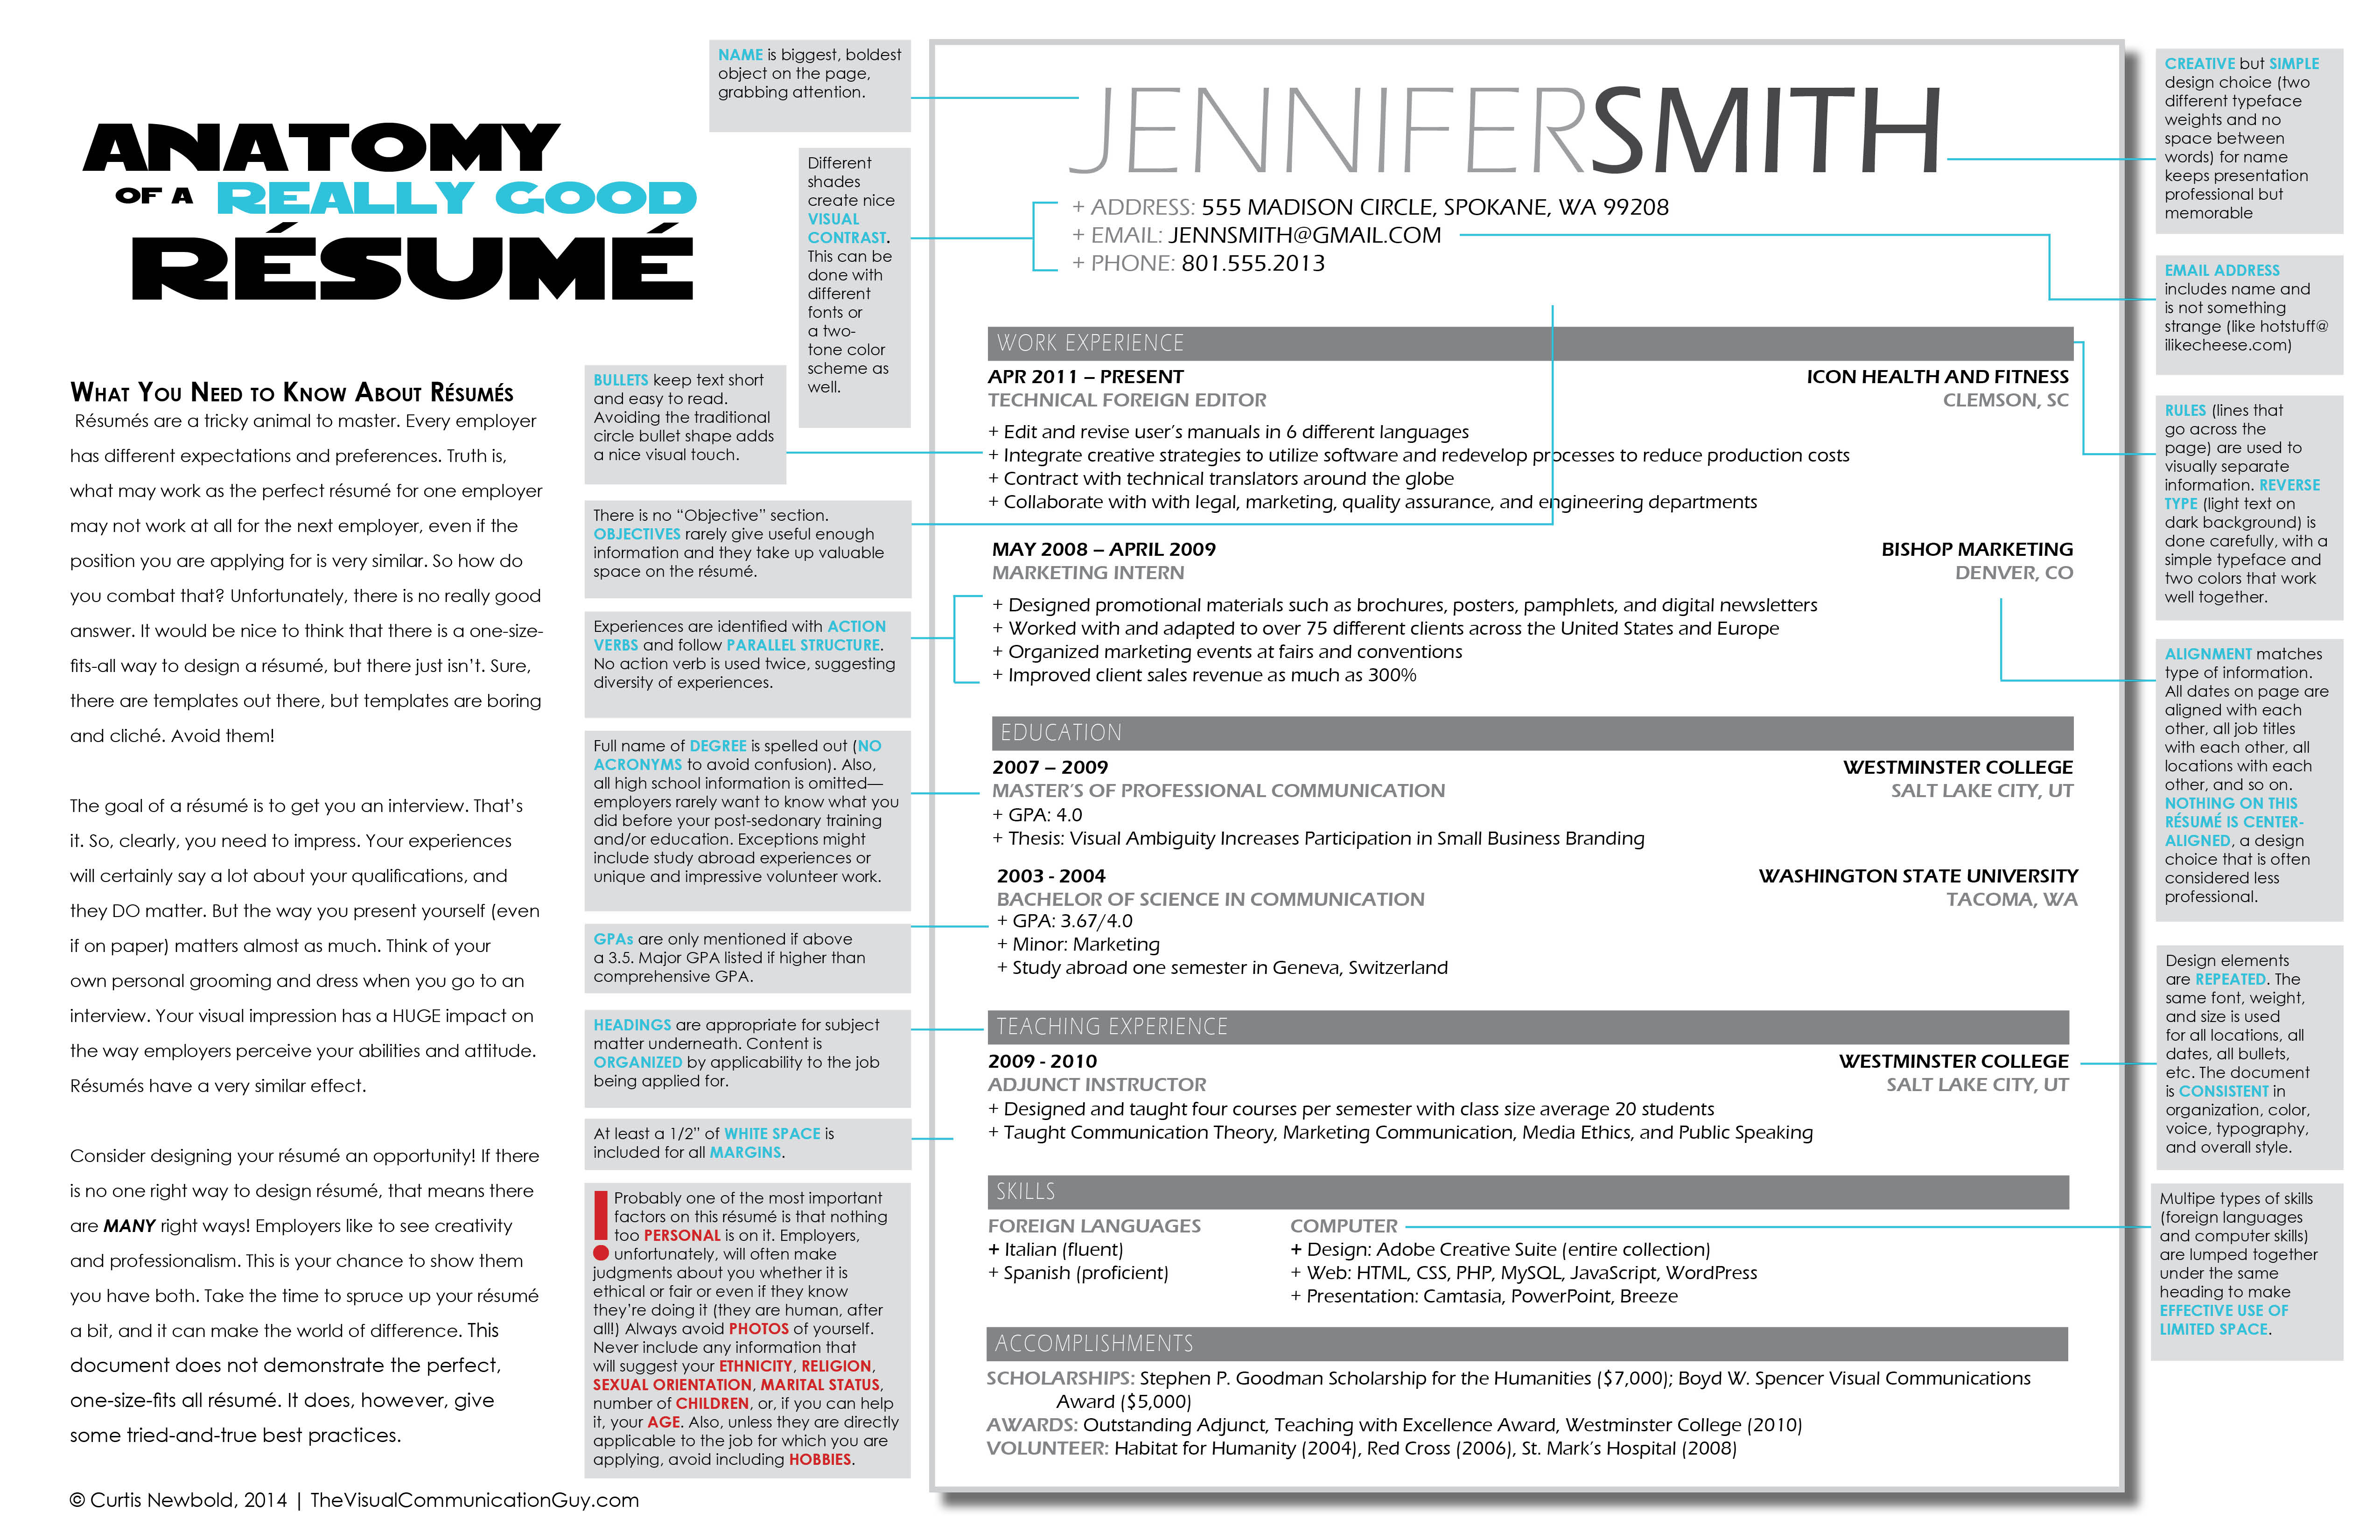 resume What Is A Great Resume the anatomy of a really good example resume